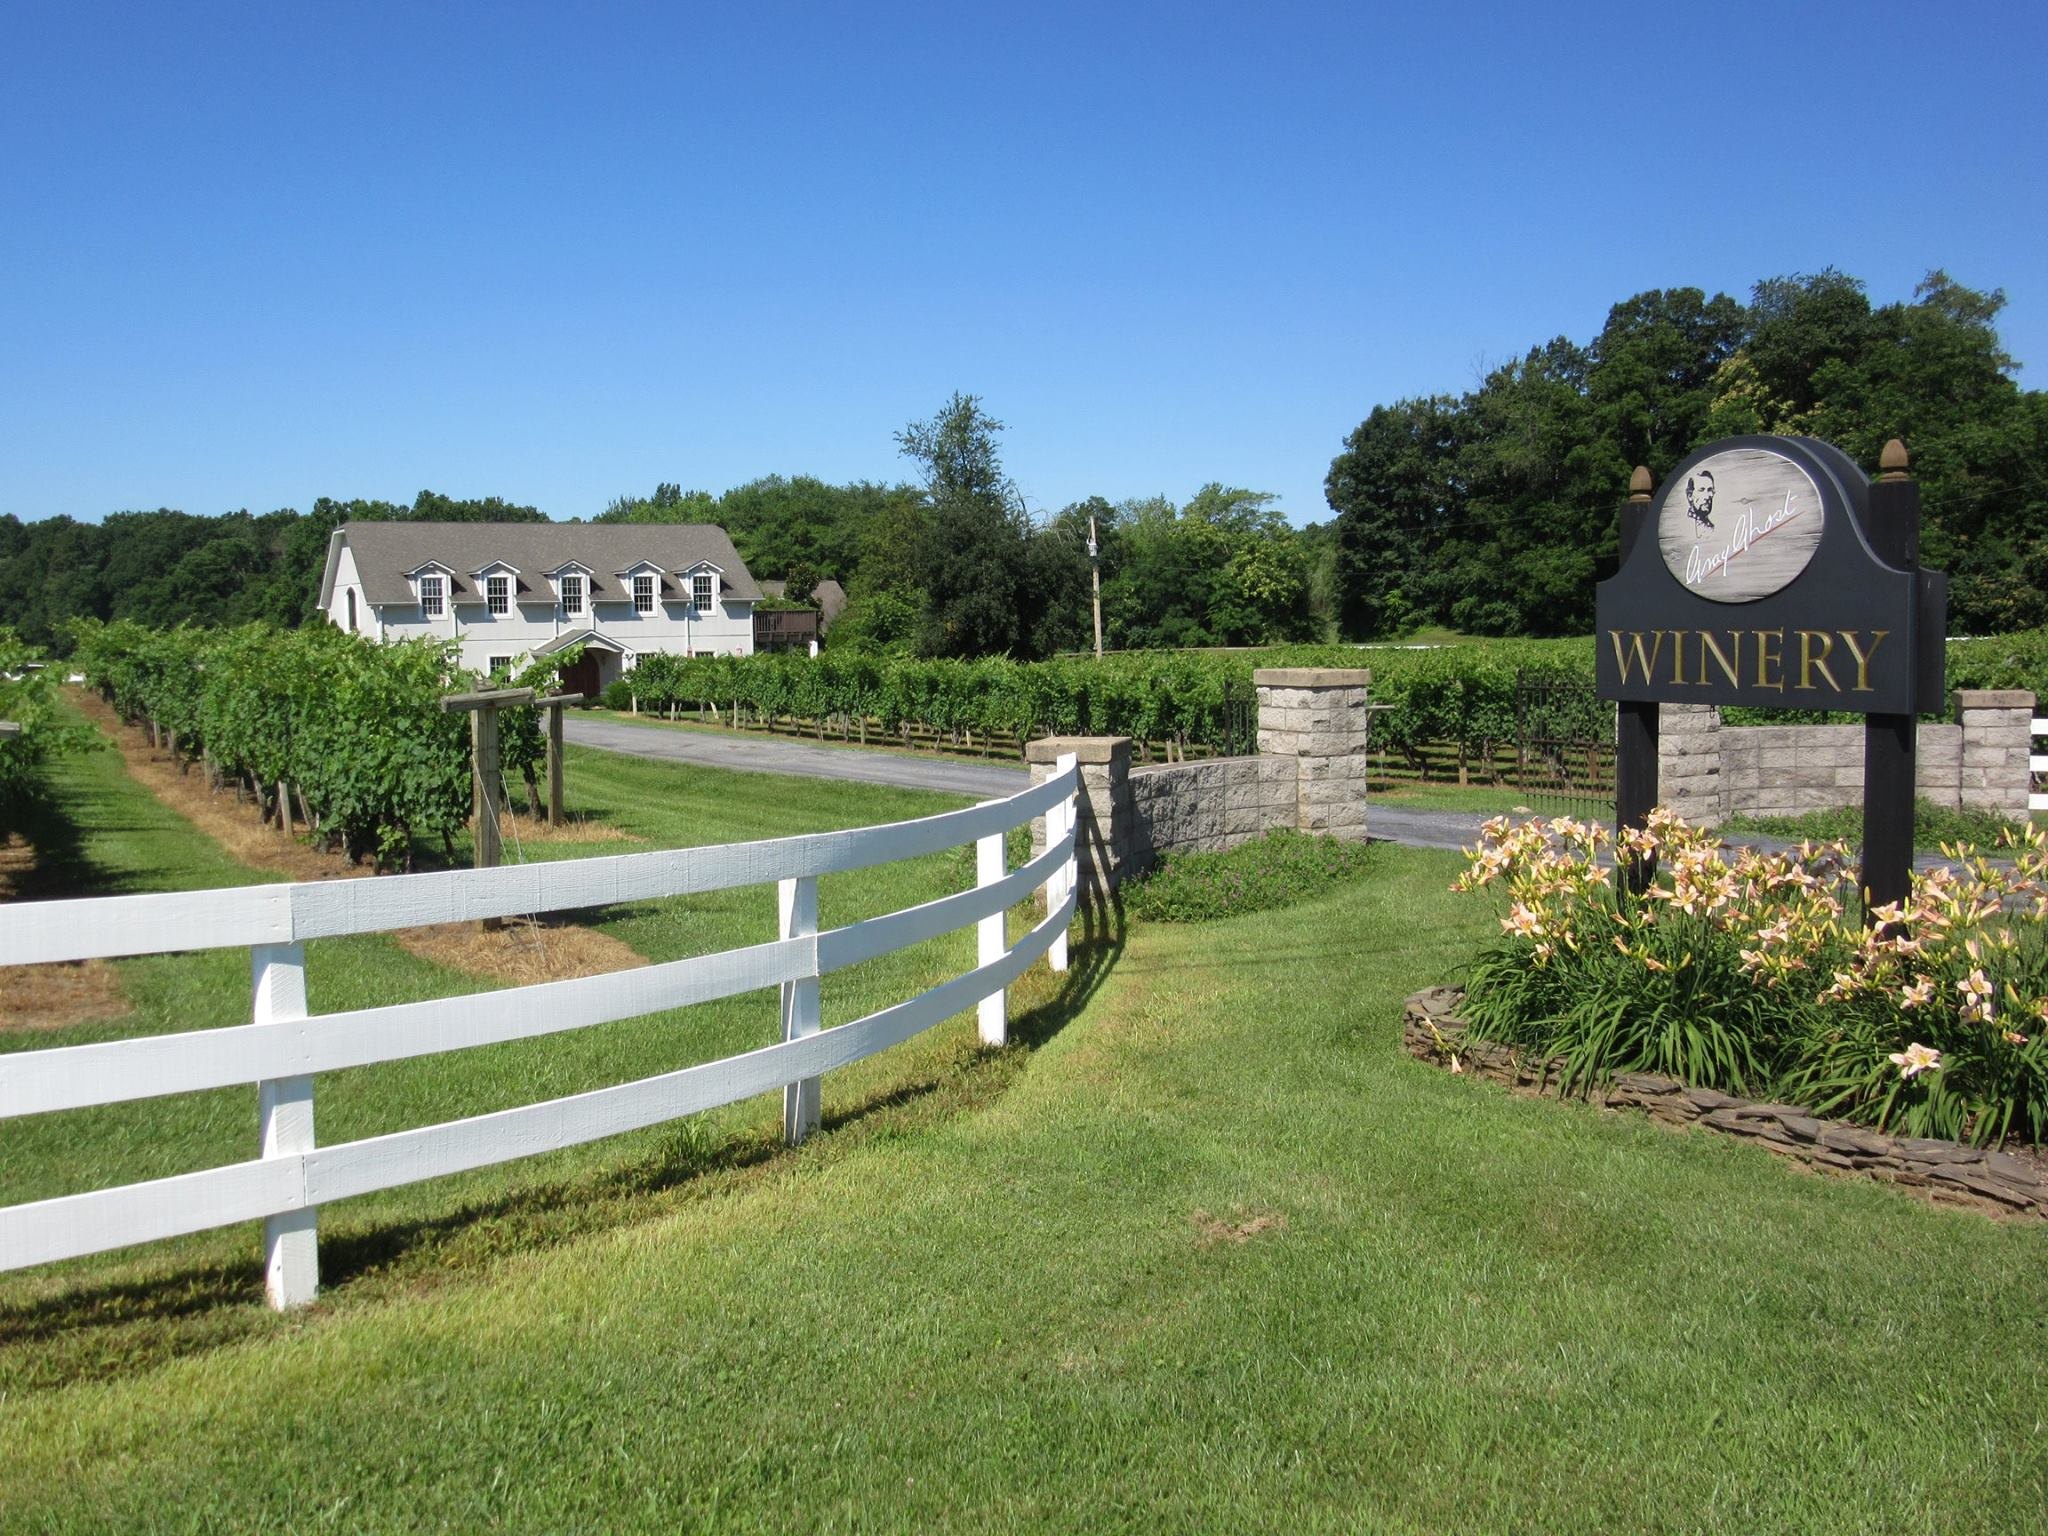 Culpeper-Culpeper-VA-Gray-Ghost-Vineyards-Winery-Live-Music-Tours-Wine-Tasting-Summer